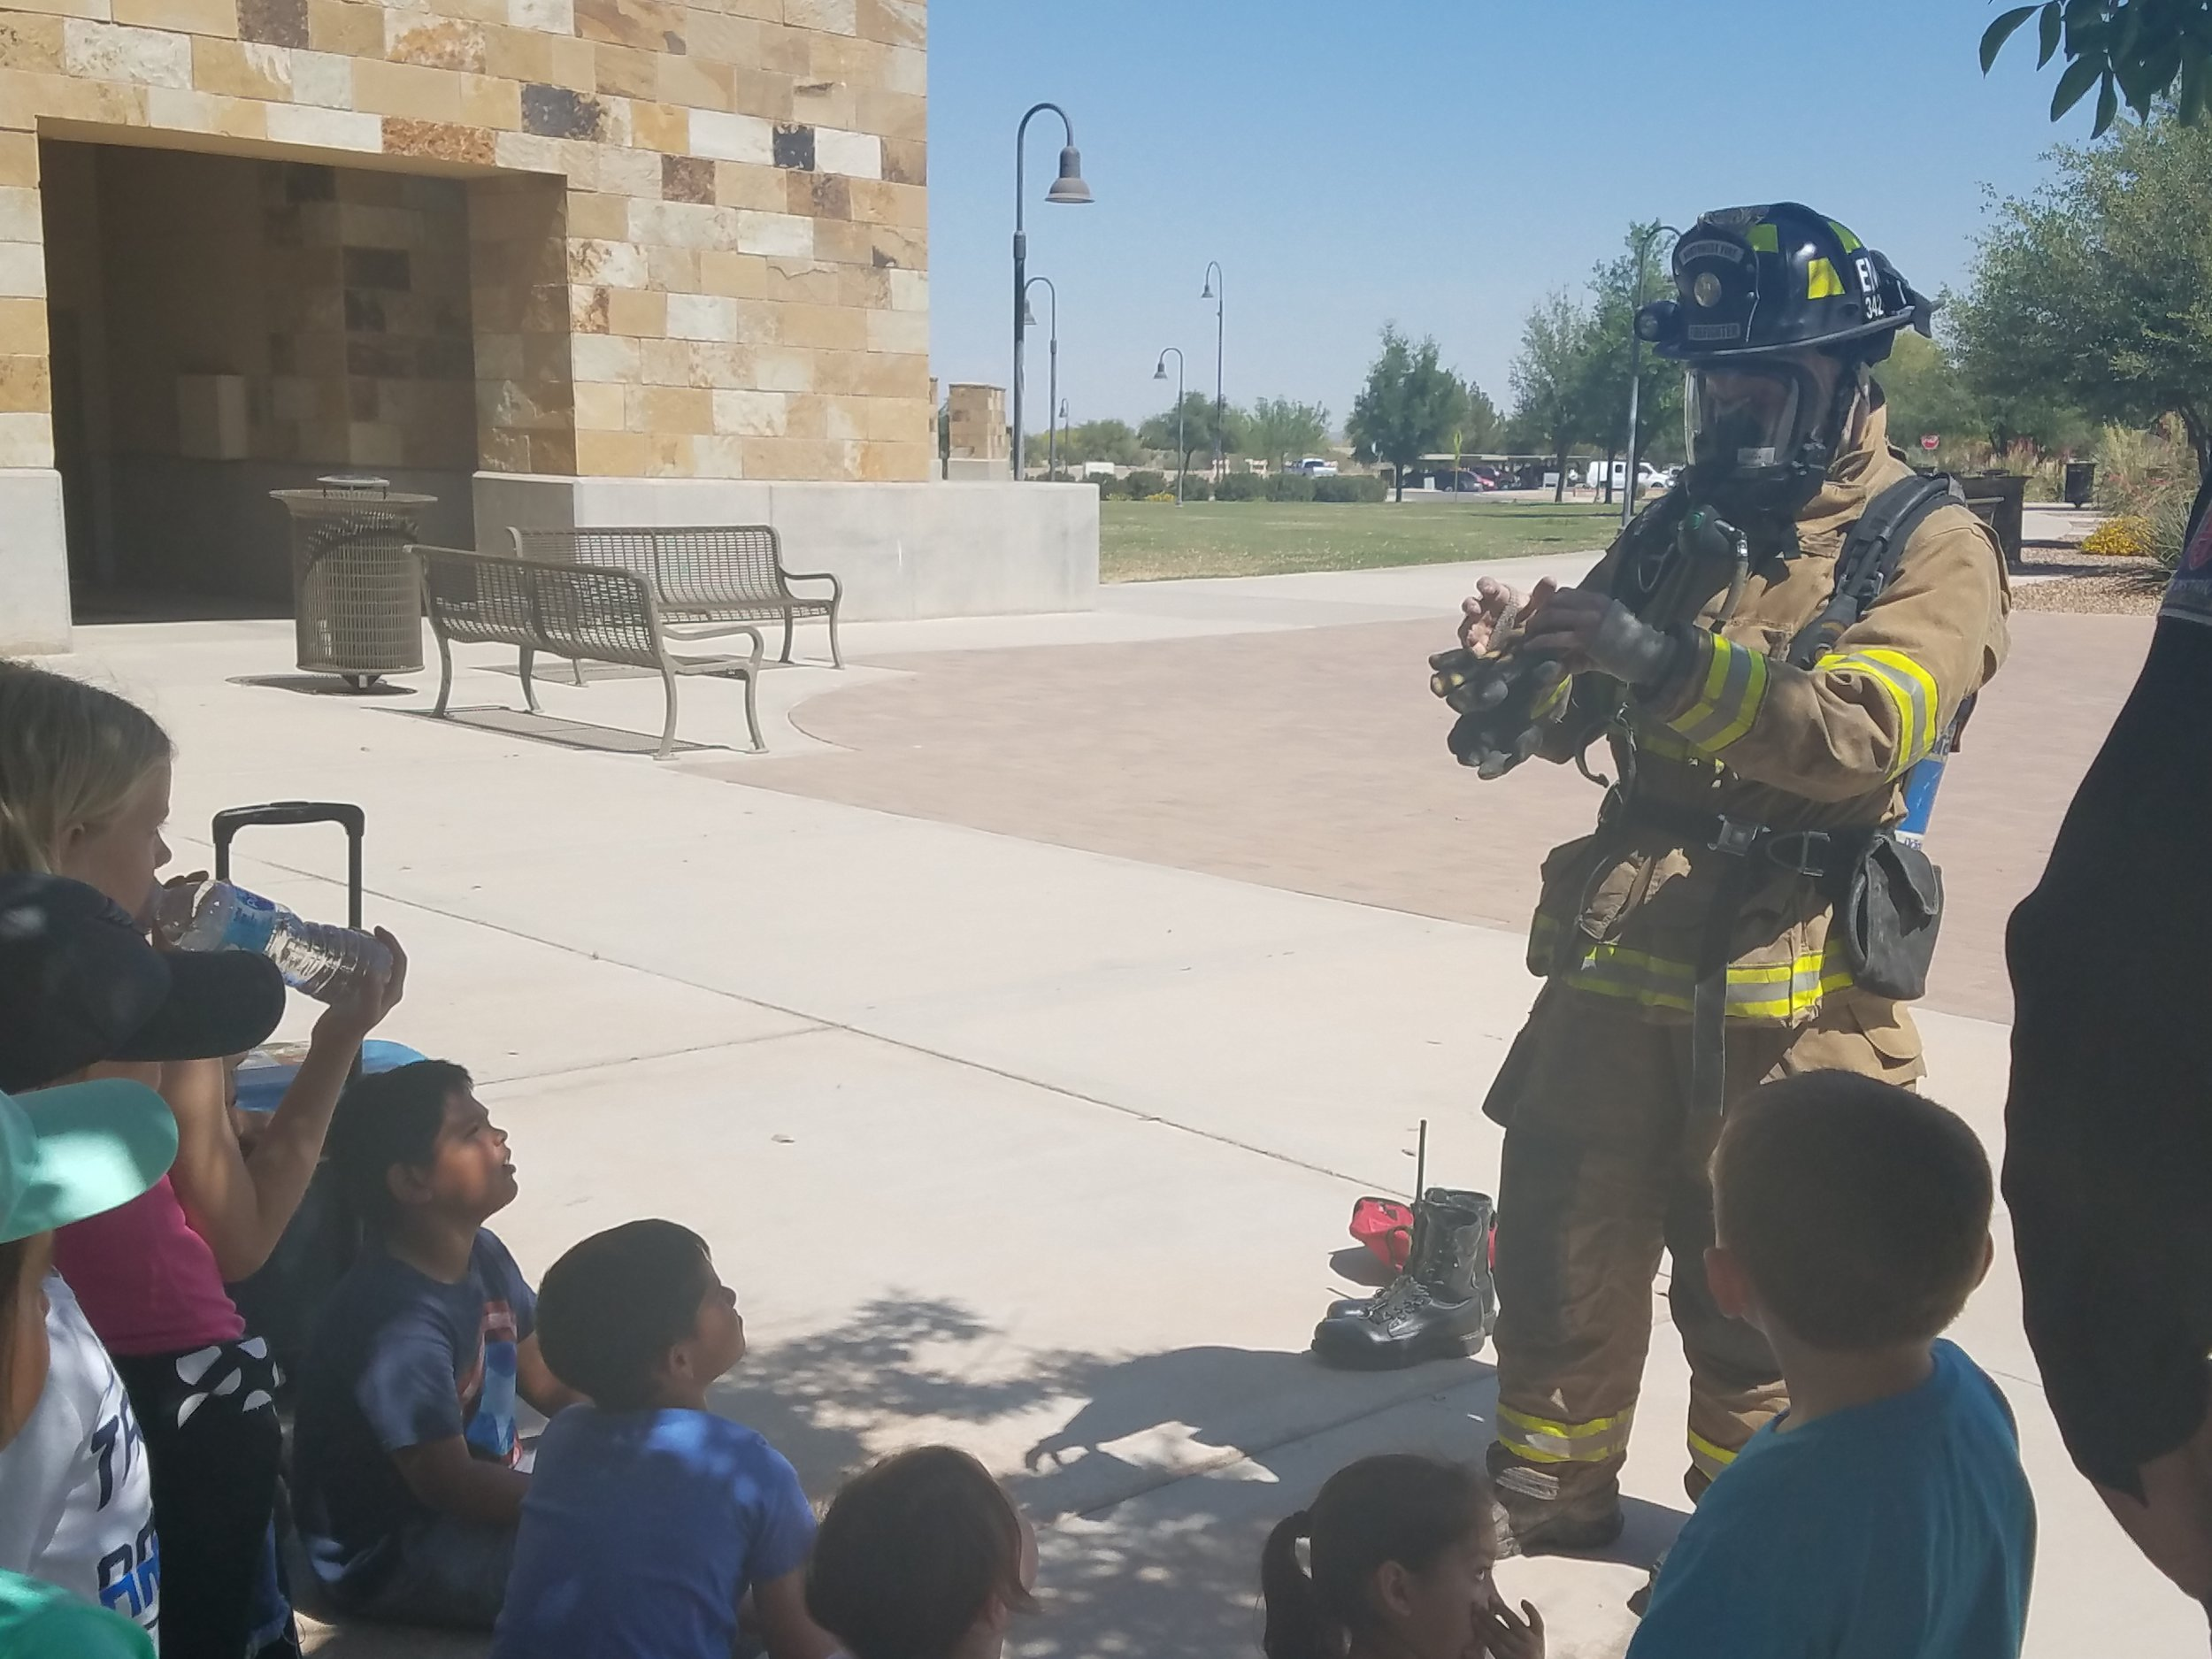 Northwest Fire District provides a demonstration